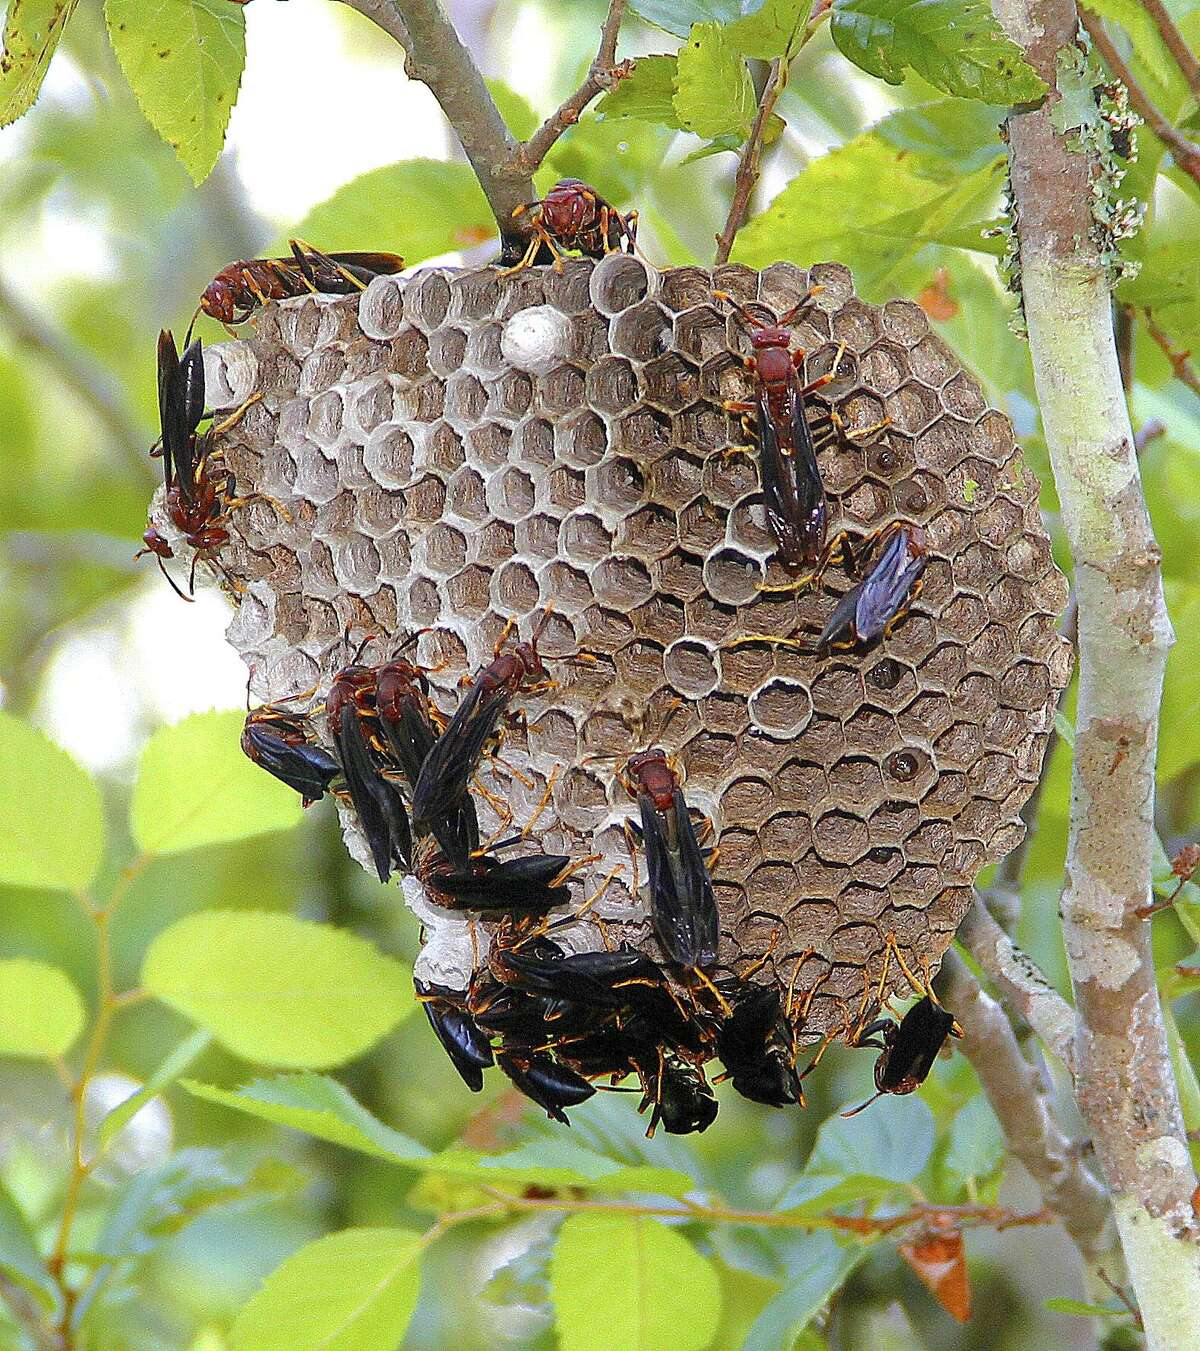 Wasps (and other flying, stinging insects) Yellowjackets, mud daubers and other wasps can build nests around your home. You definitely want to avoid them, as stings can be painful.